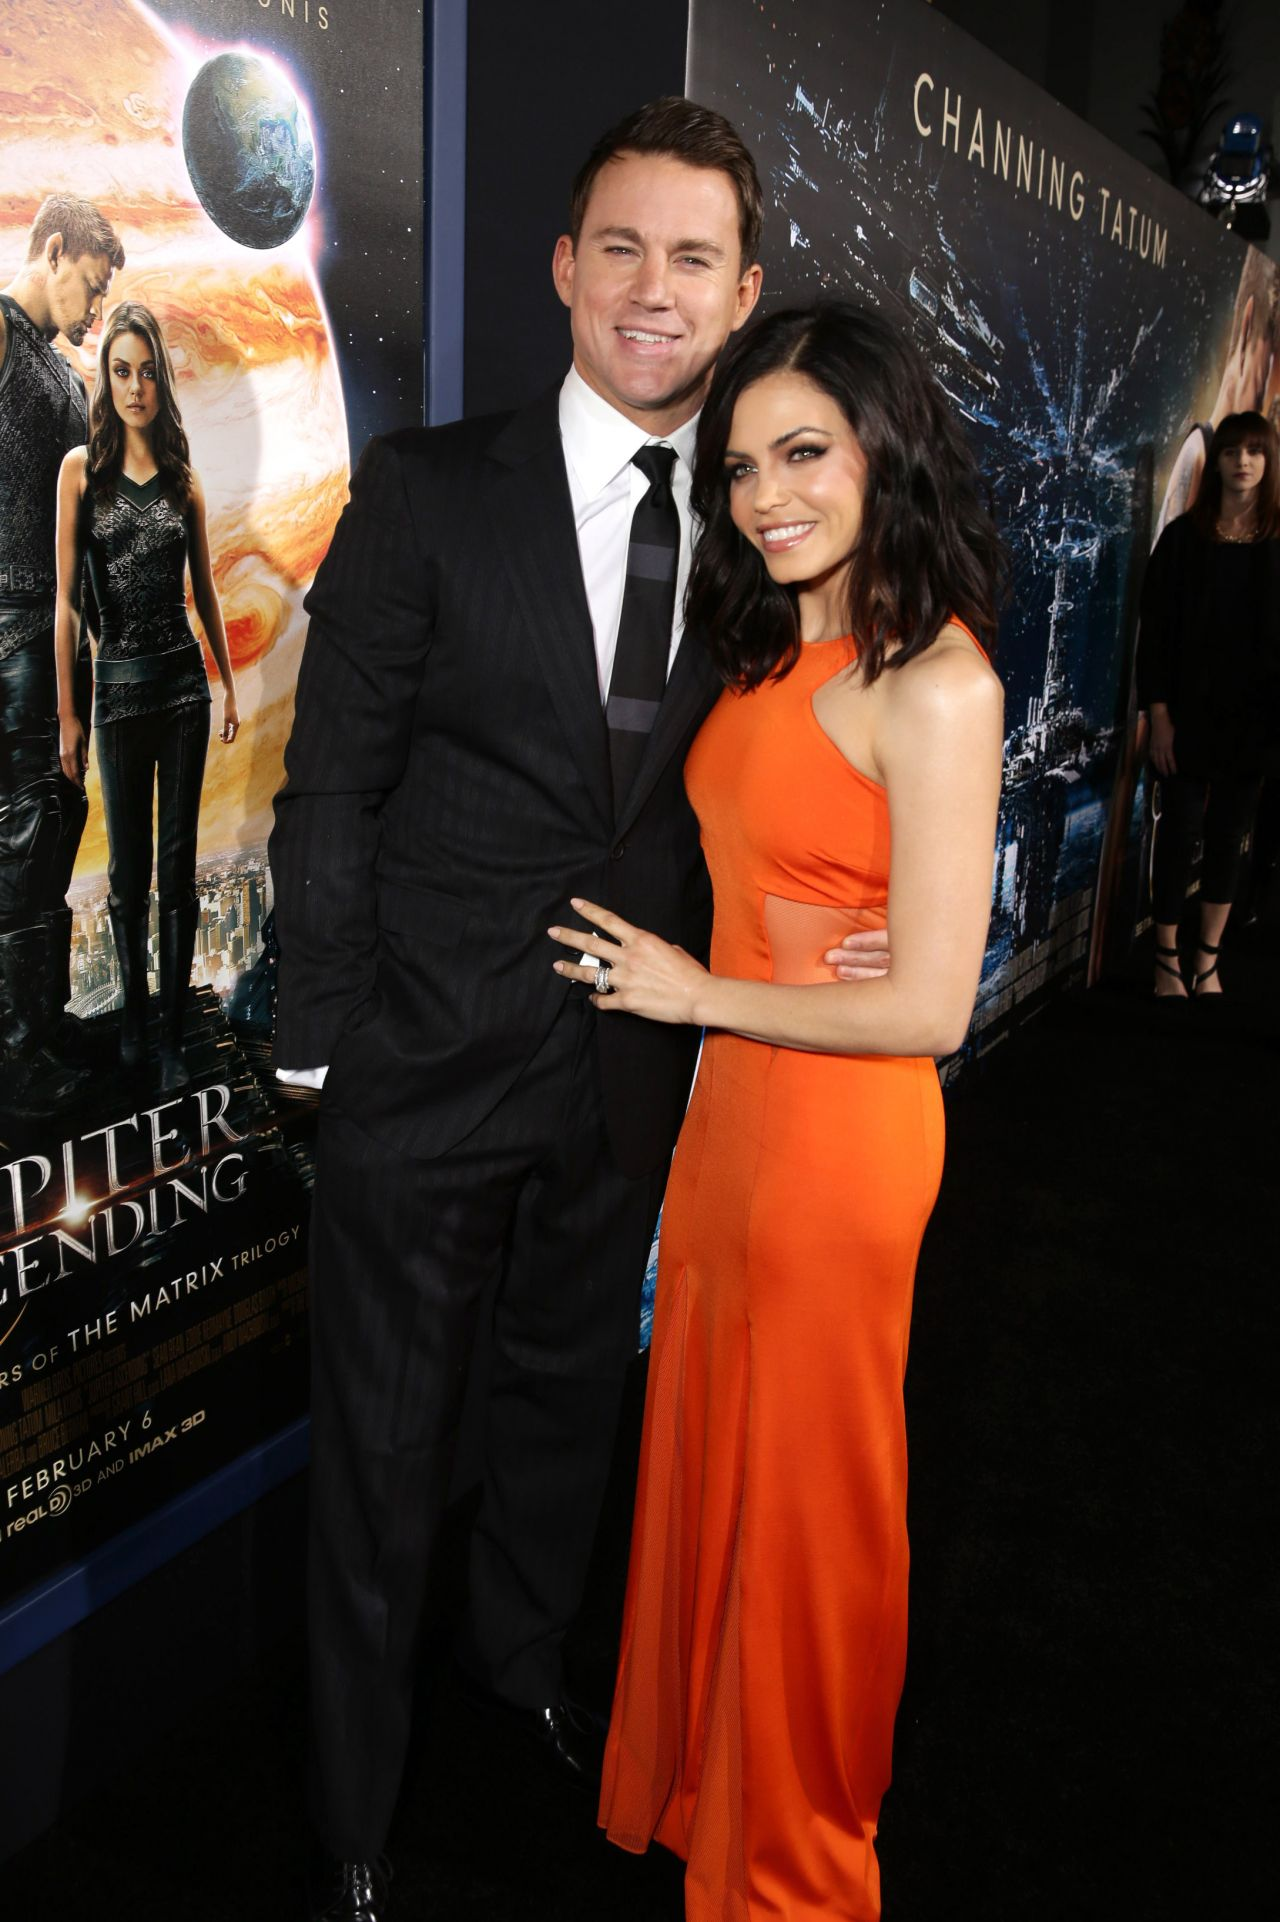 jenna-dewan-tatum-jupiter-ascending-premiere-in-hollywood_3